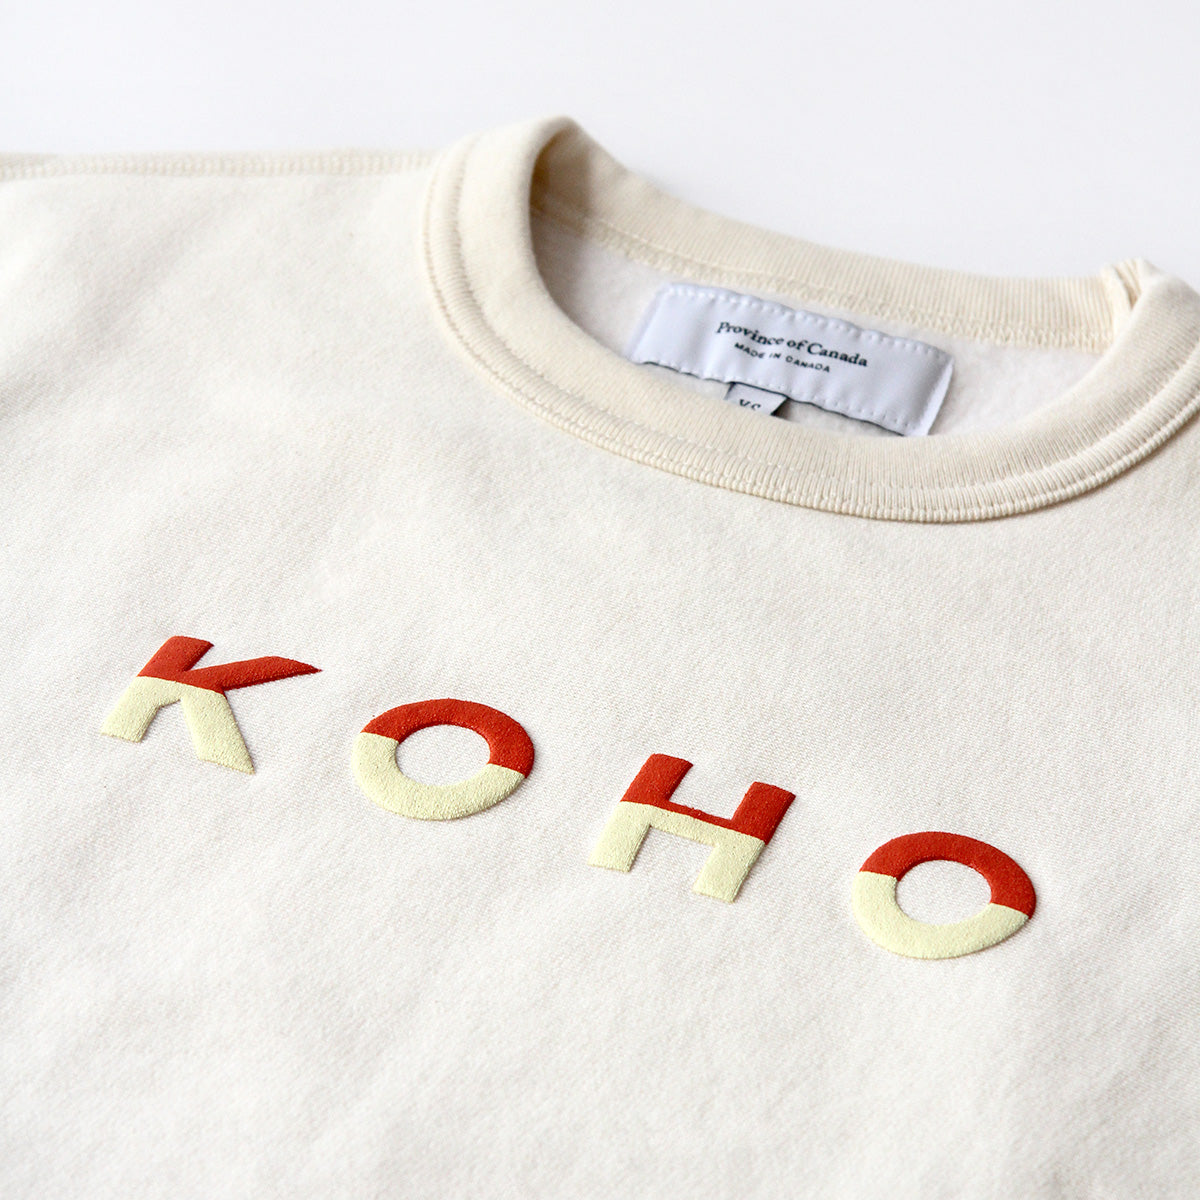 Province of Canada - KOHO Crewnecks - Made in Canada